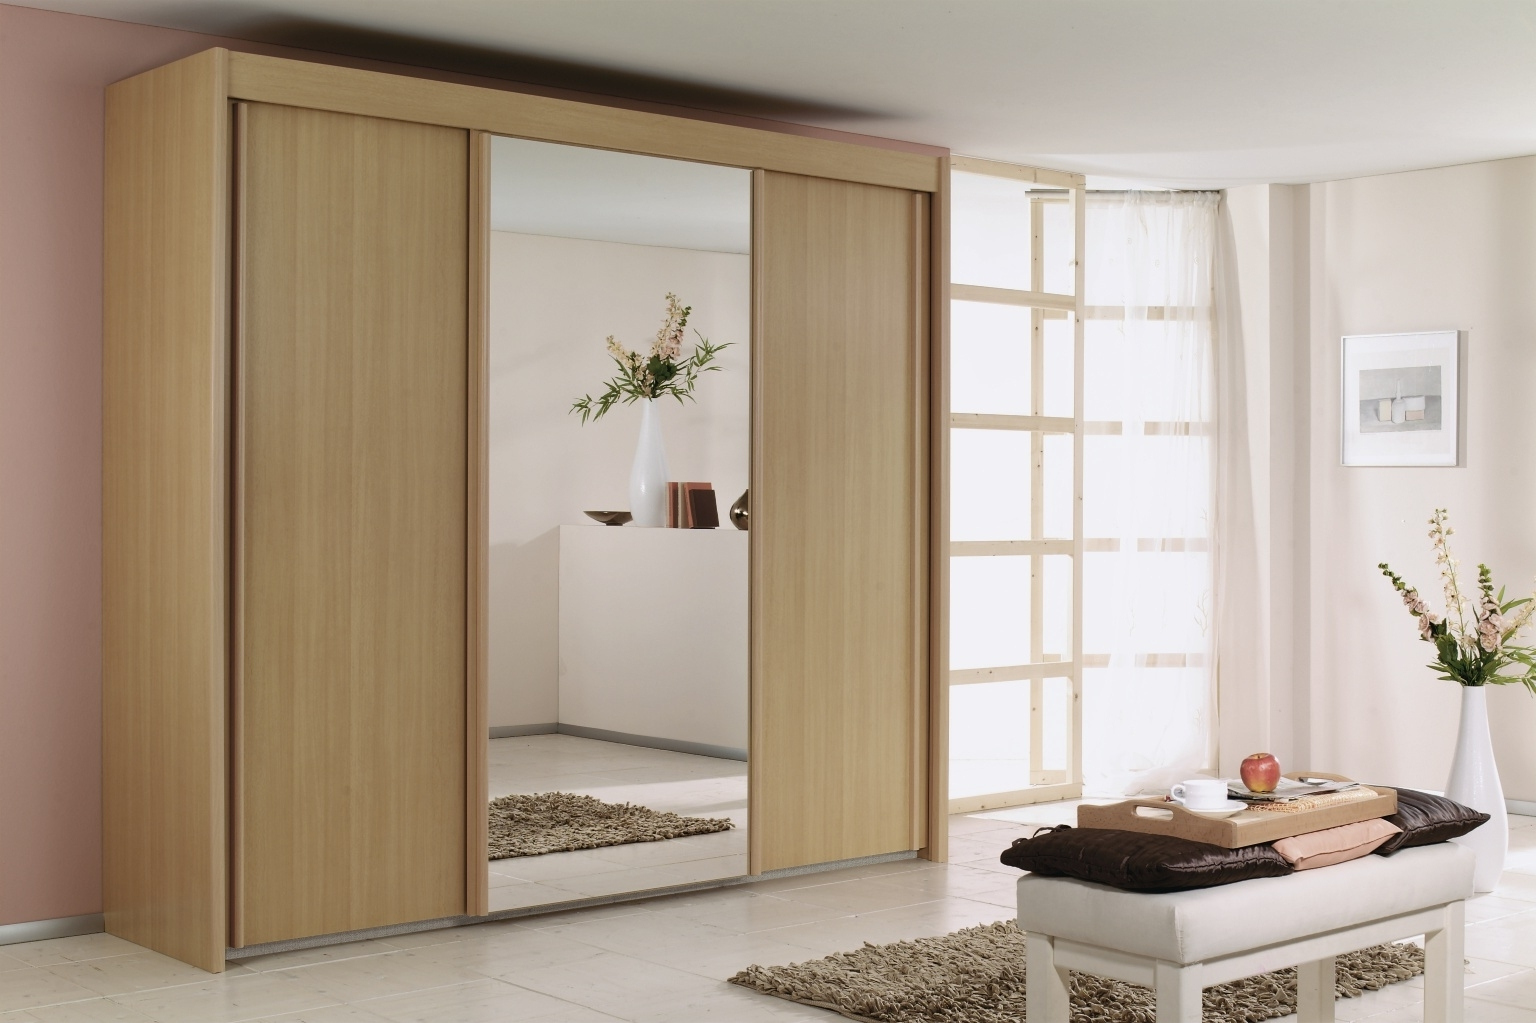 Rauch Imperial Sliding Wardrobe – Furniture Brothers Regarding Most Current Rauch Imperial Wardrobes (View 8 of 15)